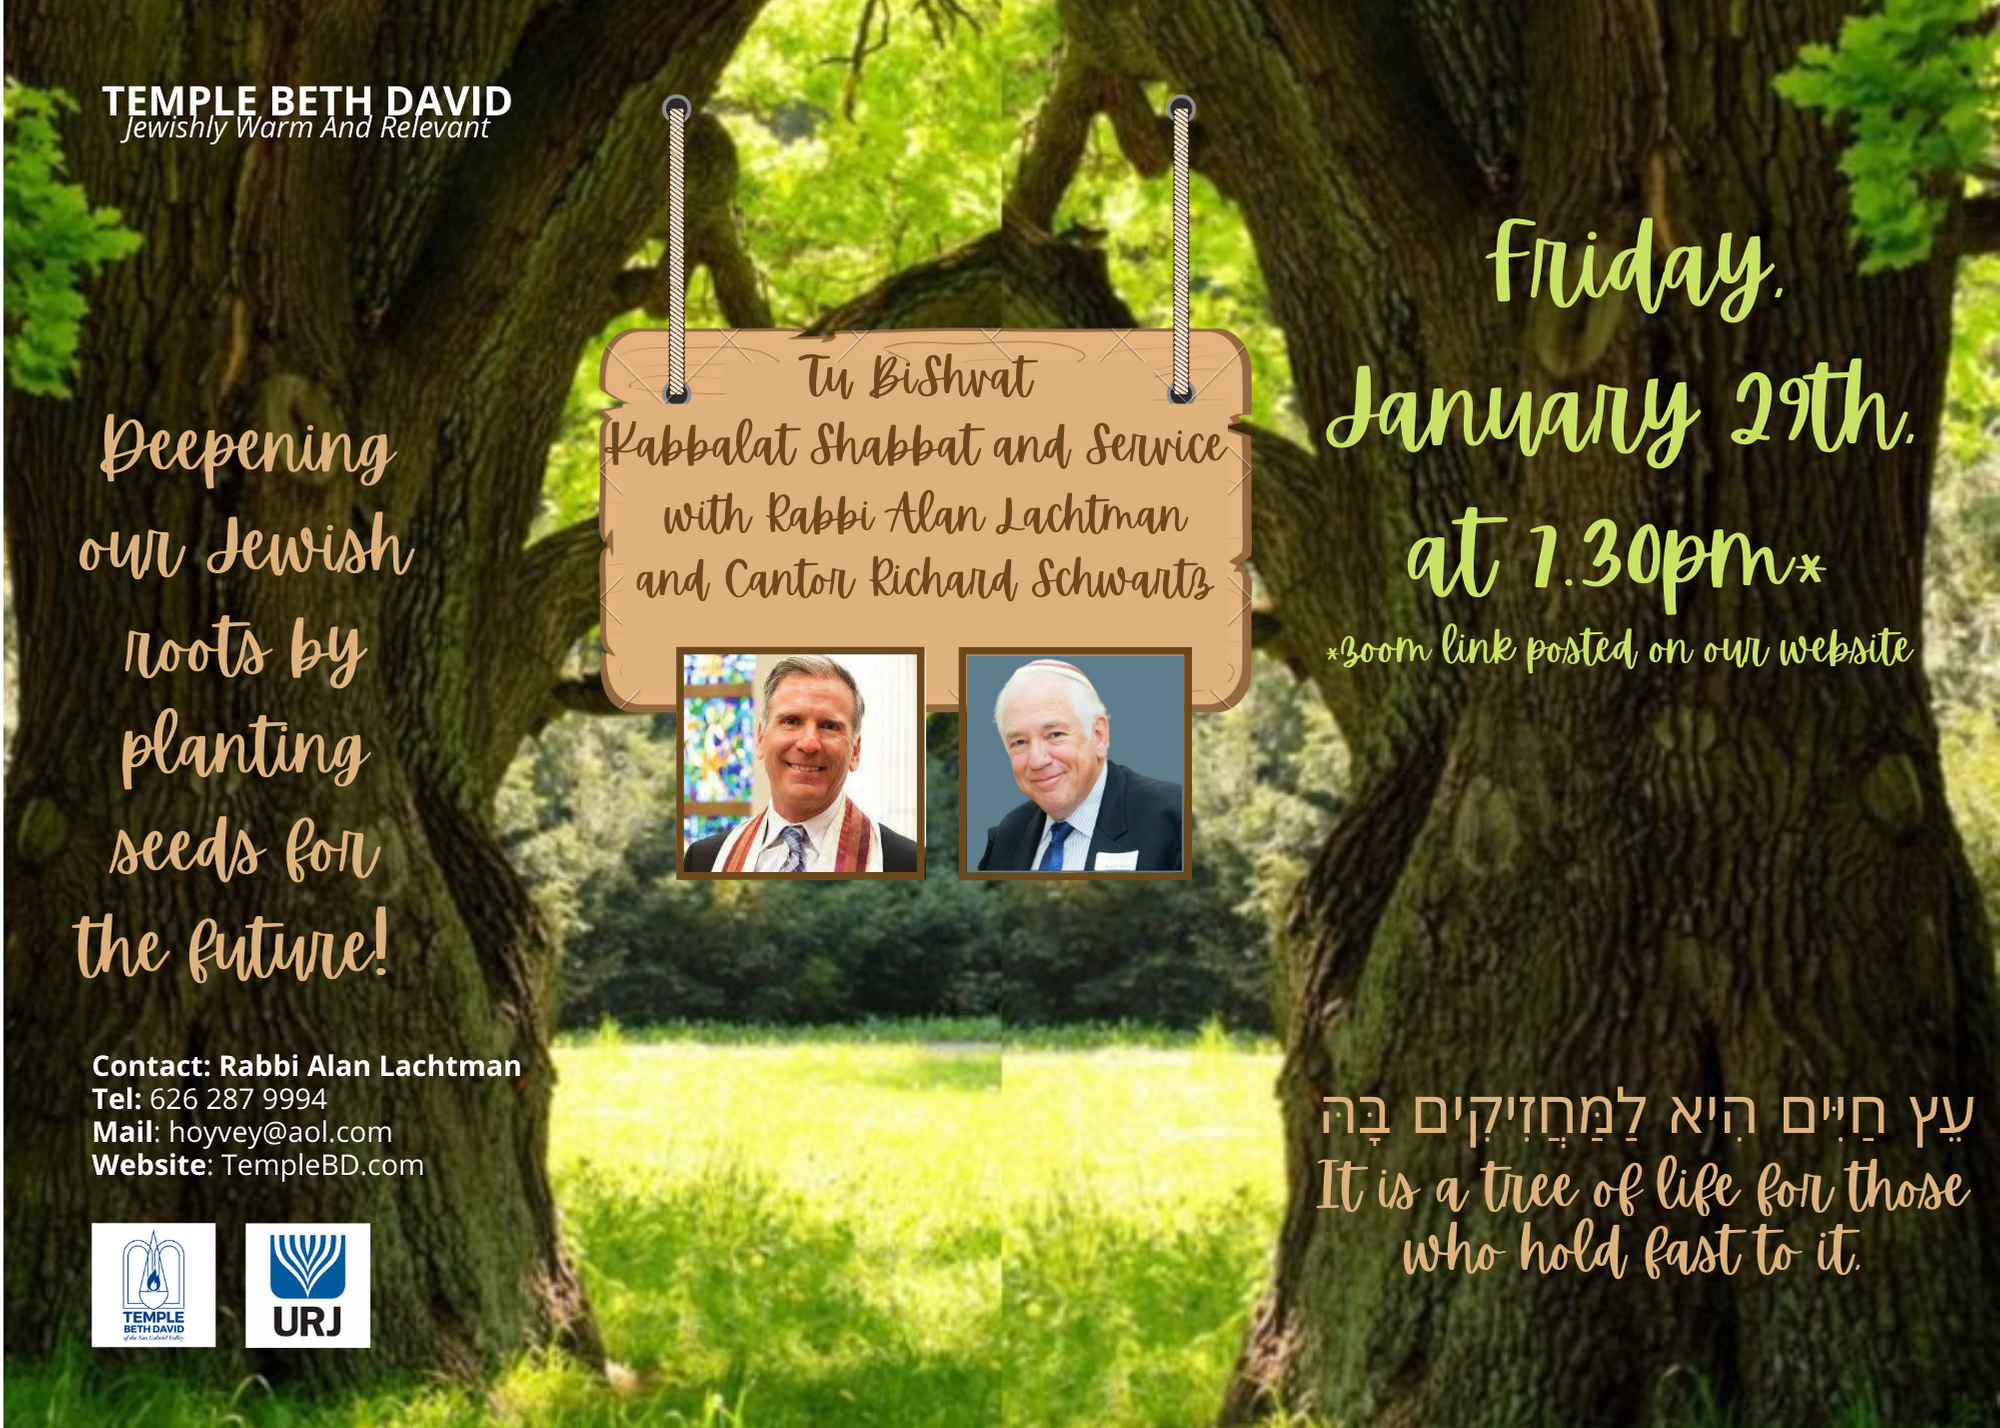 Click here to log onto Shabbat Tu BiShvat service with Rabbi Lachtman and Cantor Schwarz